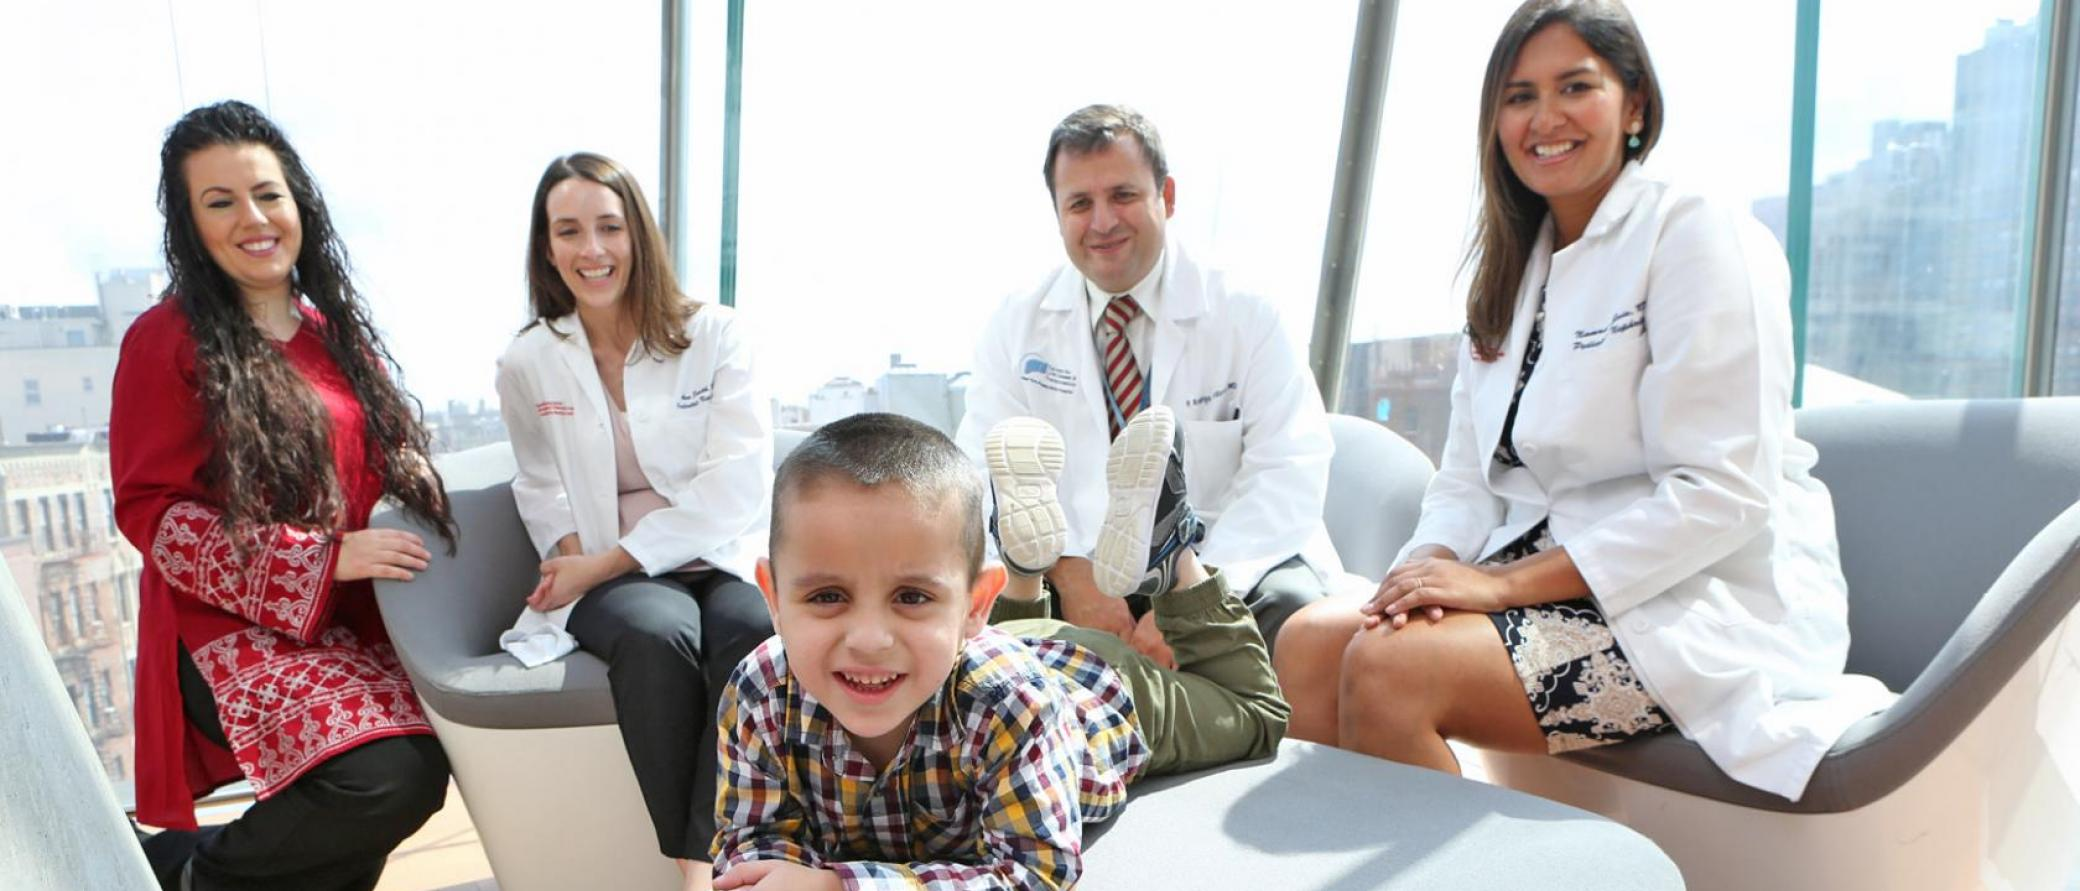 Young boy surrounded by his doctors and nurse.